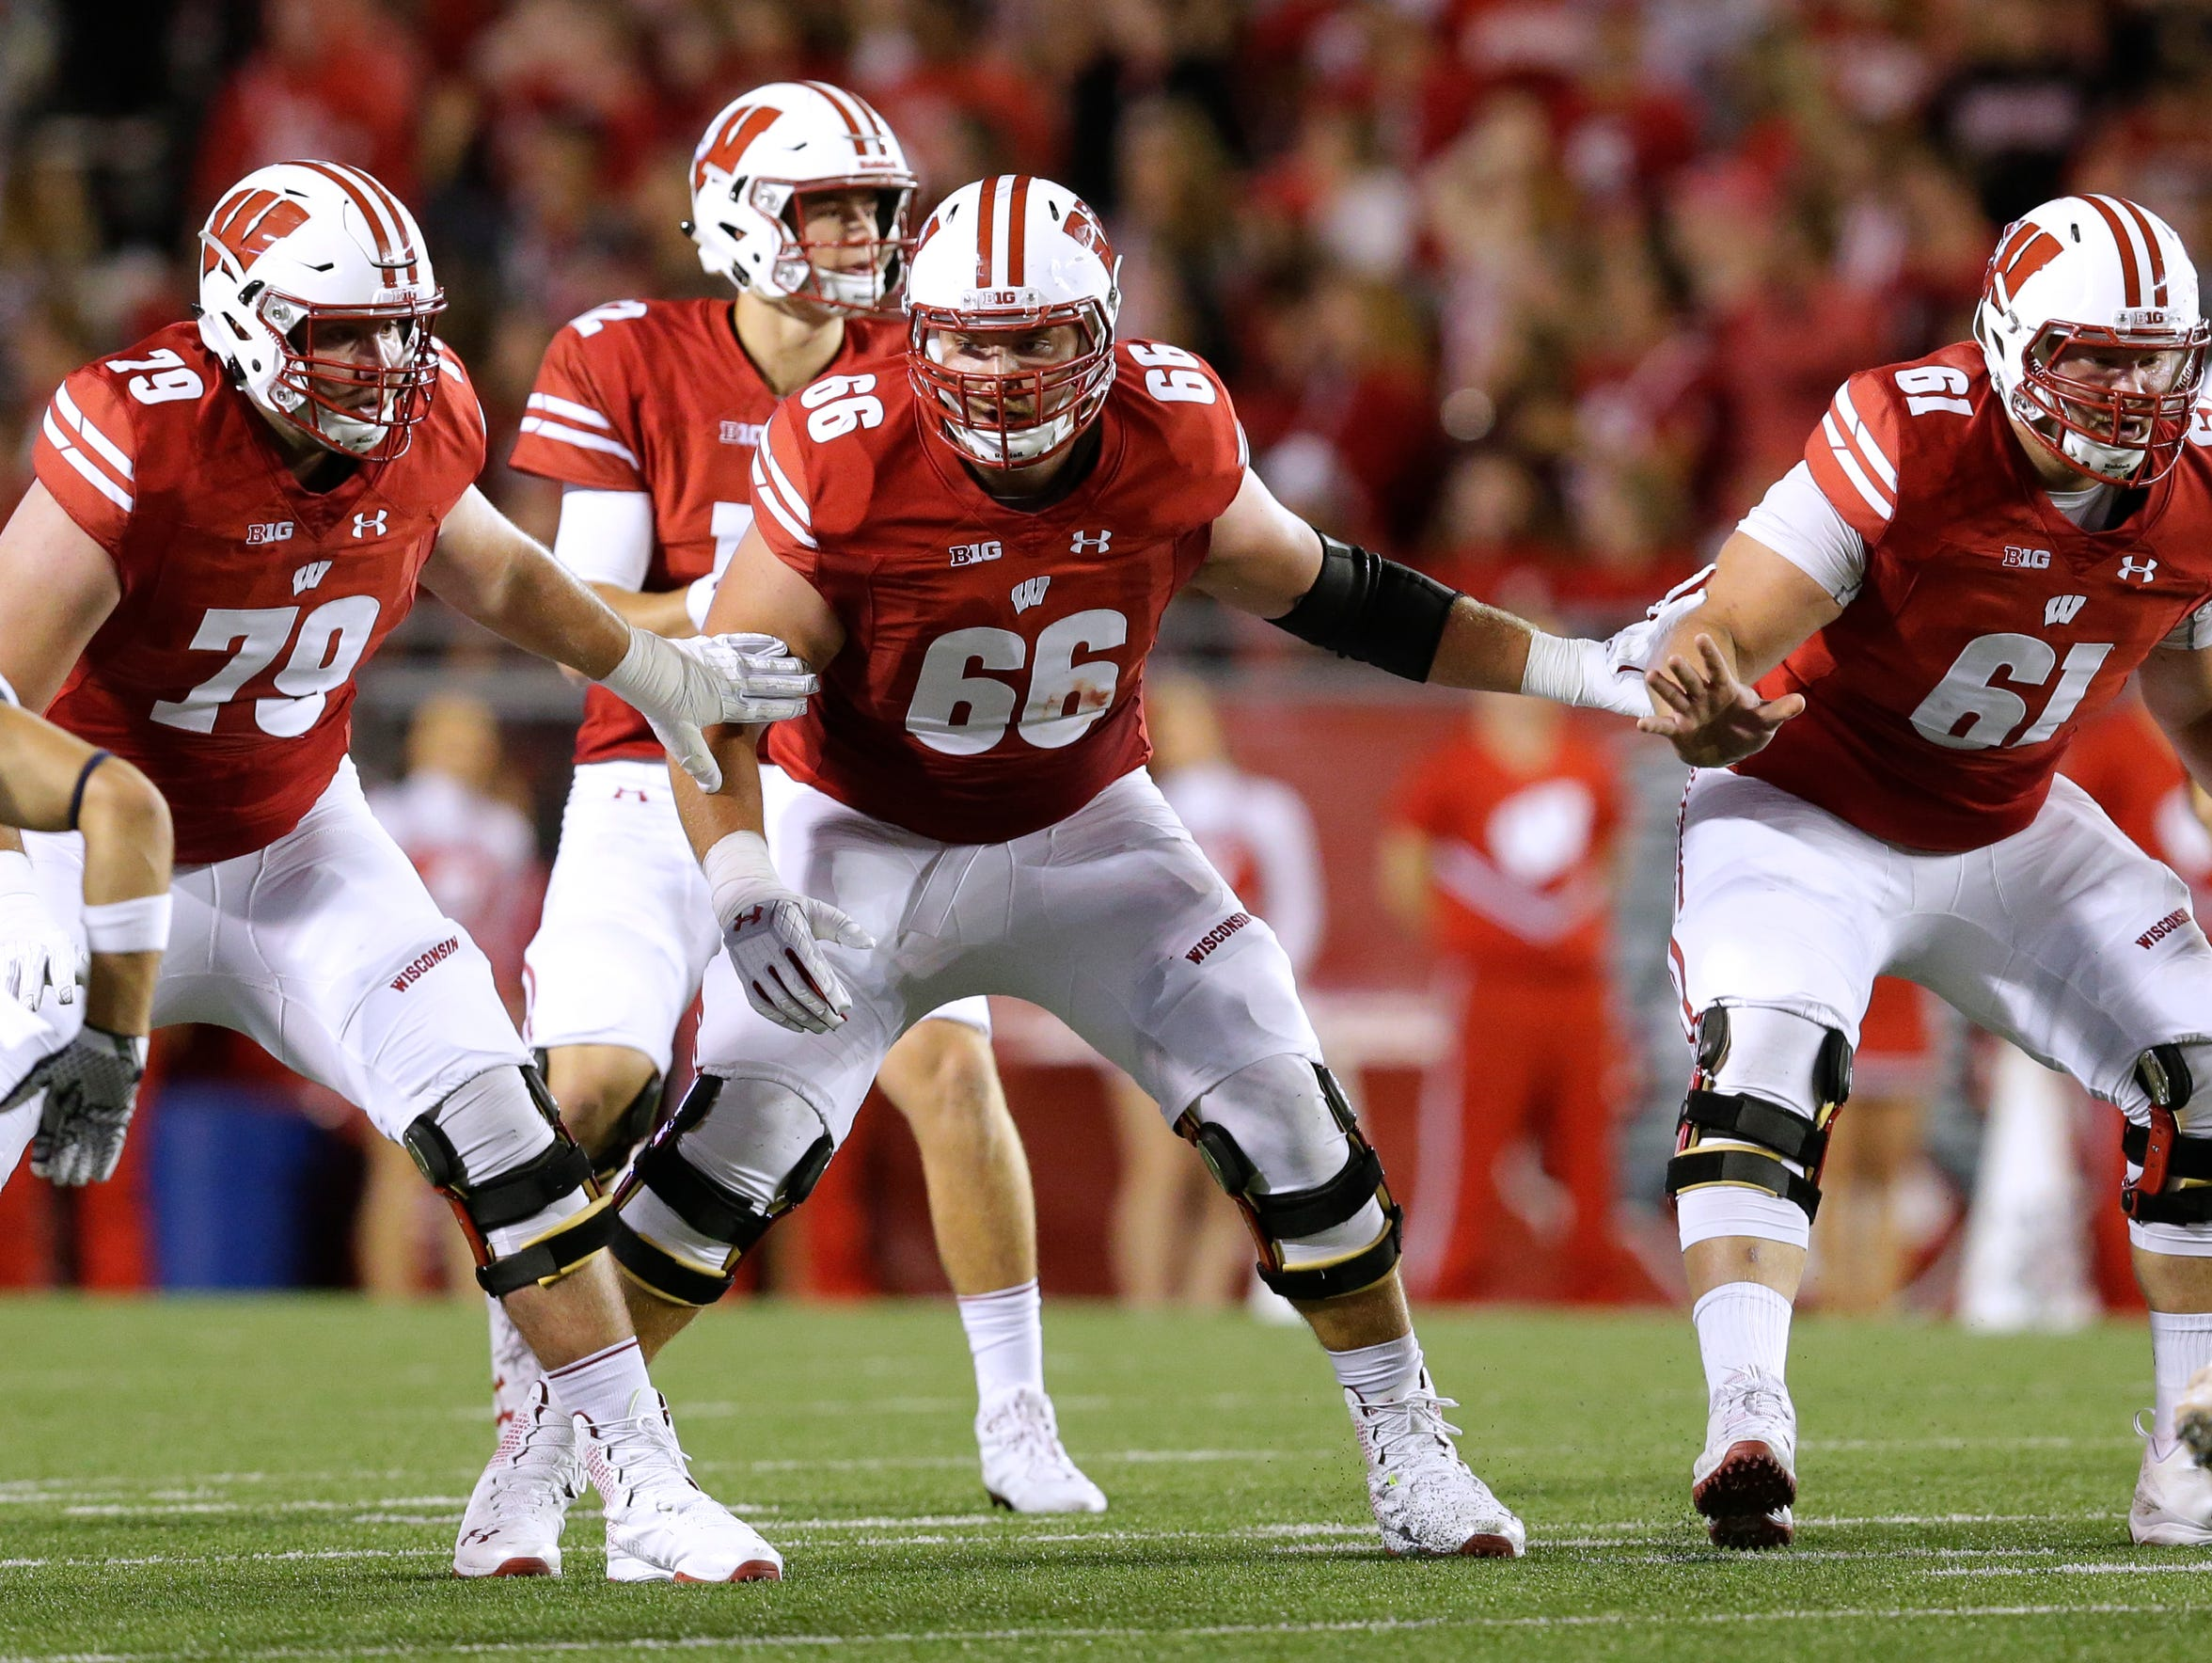 Wisconsin offensive lineman David Edwards (79), offensive lineman Beau Benzschawel (66) and offensive lineman Tyler Biadasz (61) provide pass protection during the season opener Friday, Sept. 1, at Camp Randall Stadium. Wisconsin defeated Utah State, 59-10.